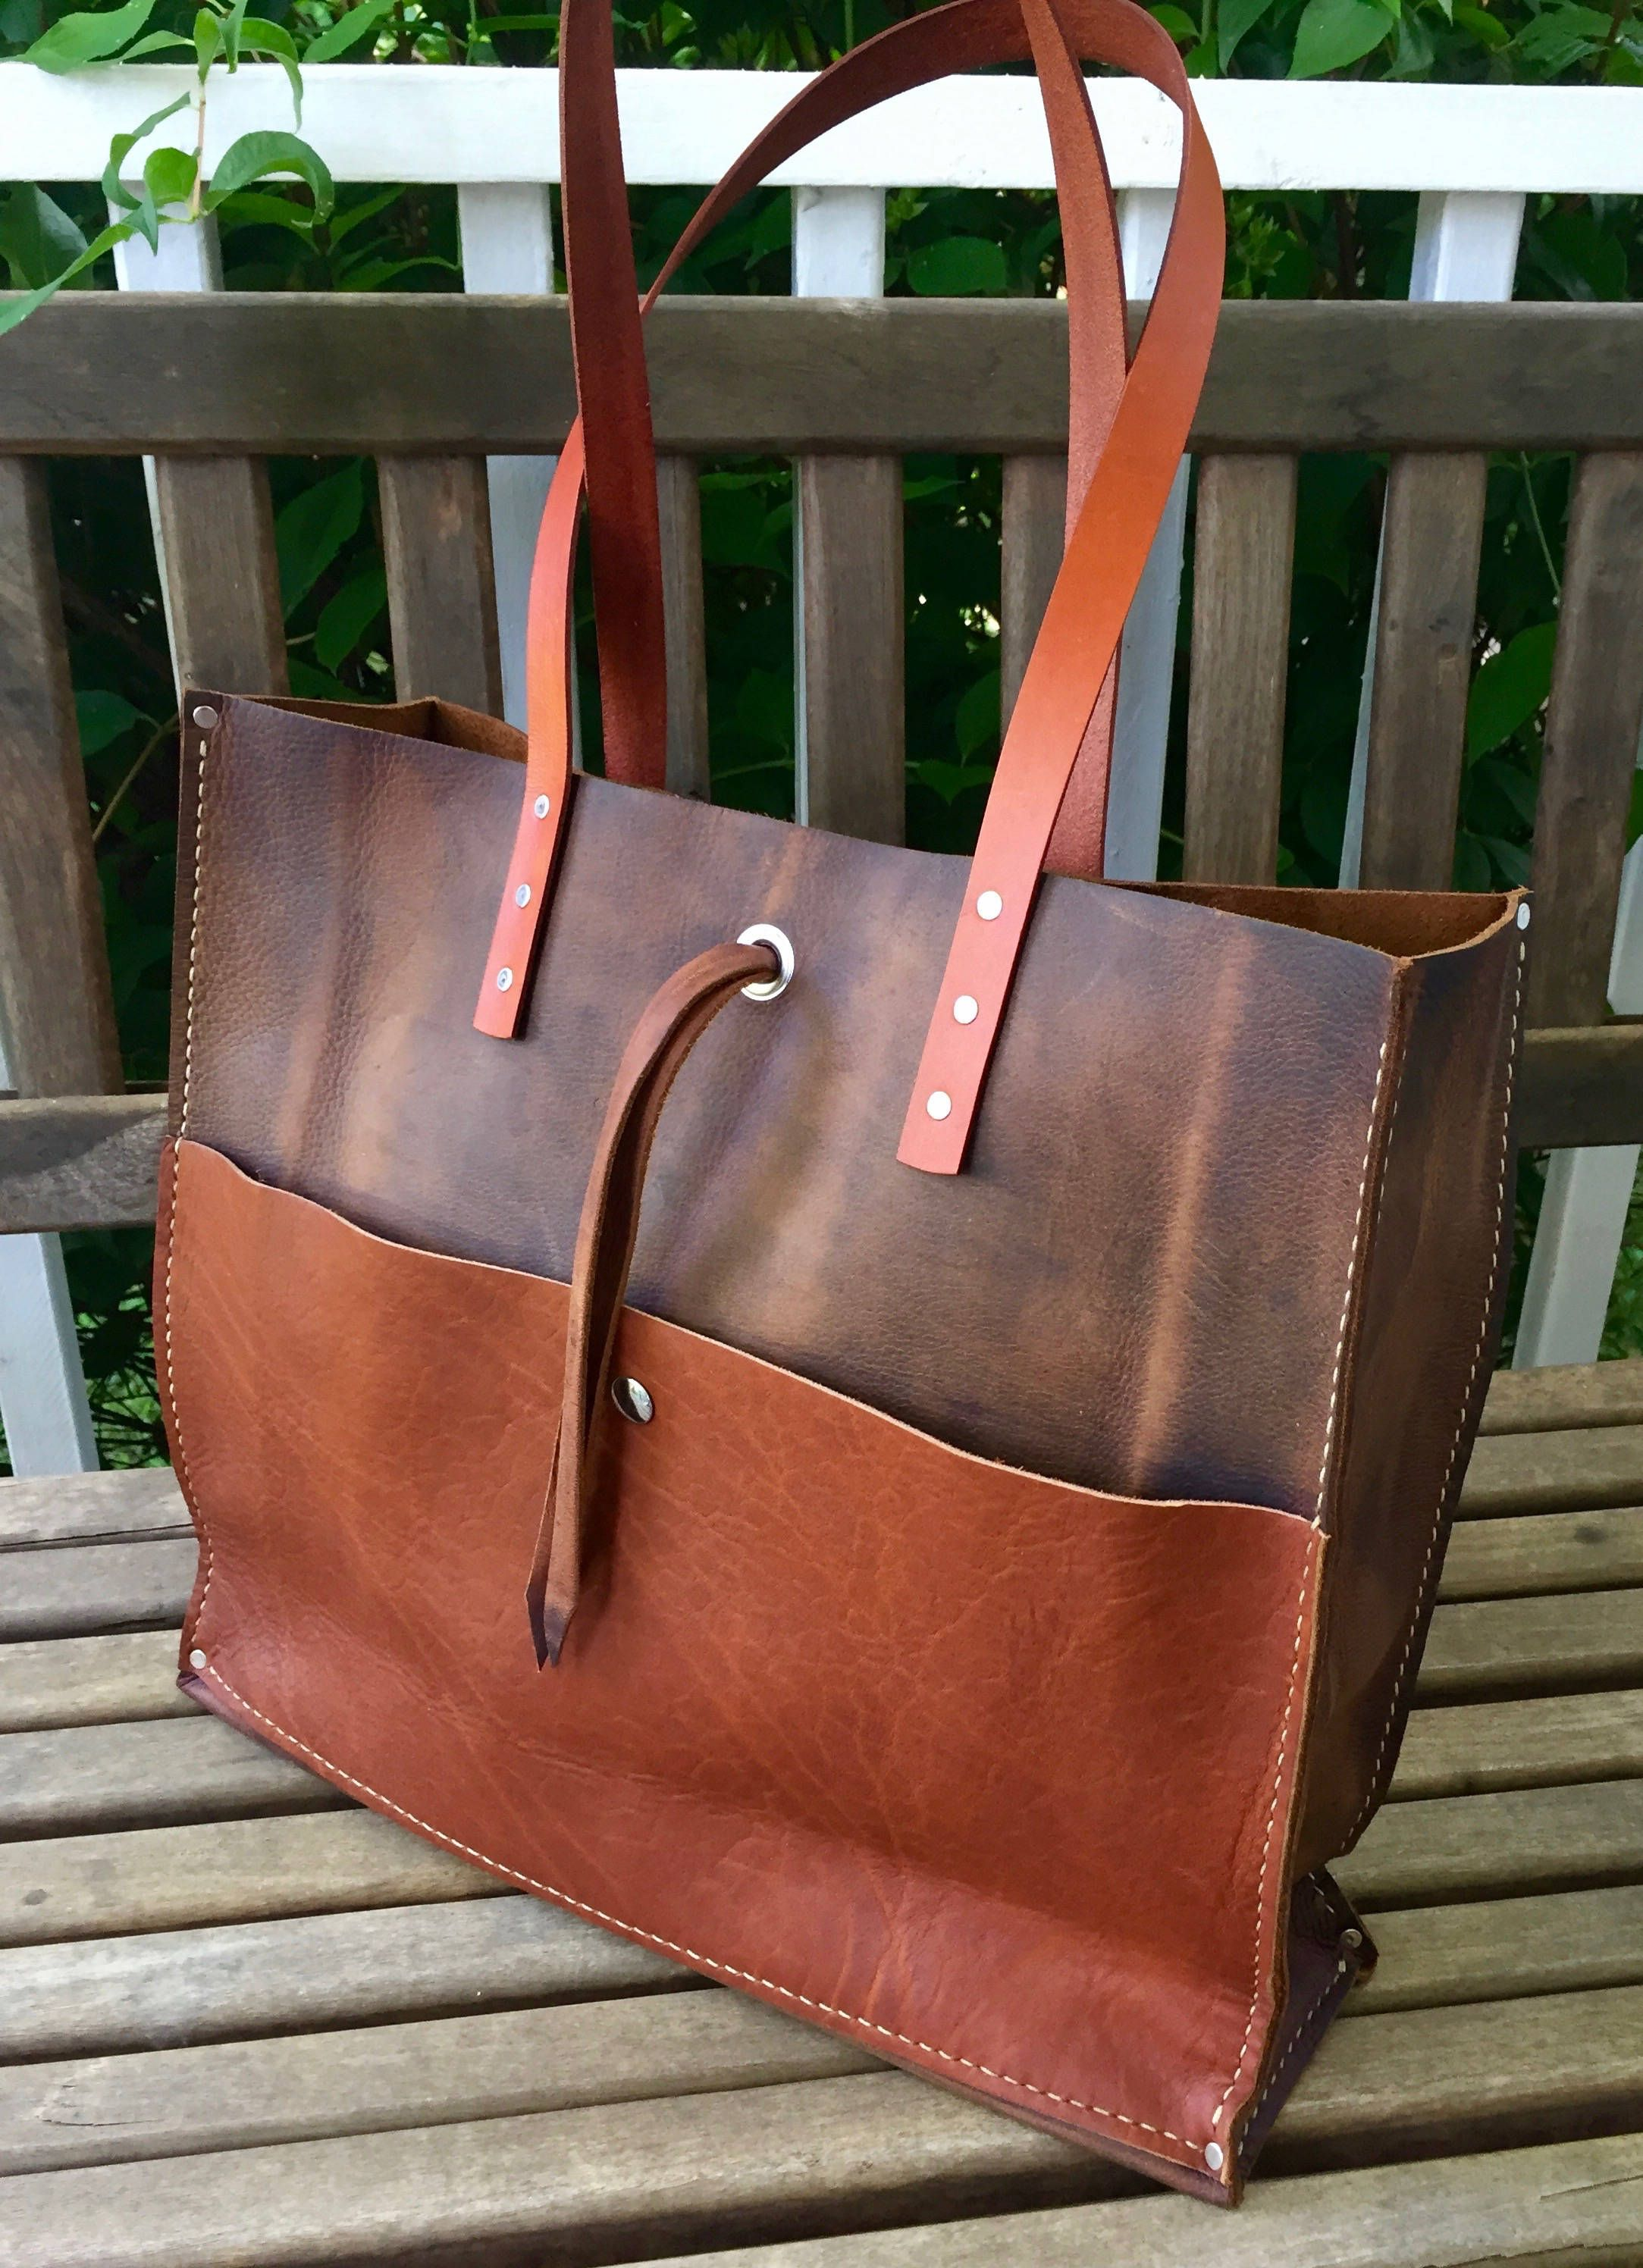 825bba2d66bcd Mixed Leather Tote* Large Leather Tote* Handmade Leather Tote ...